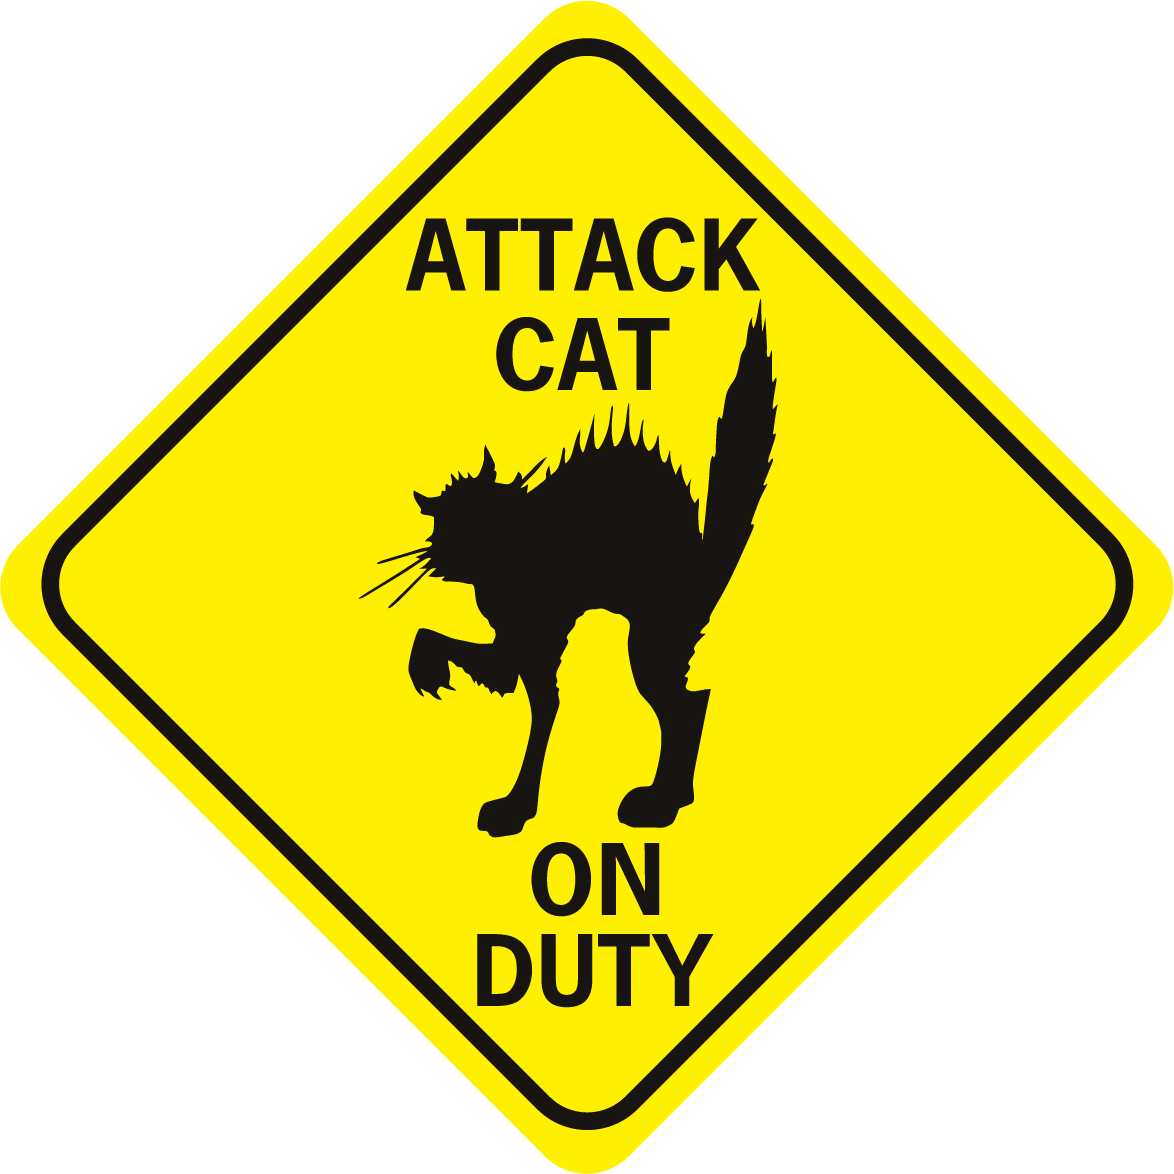 Attack Cat on Duty